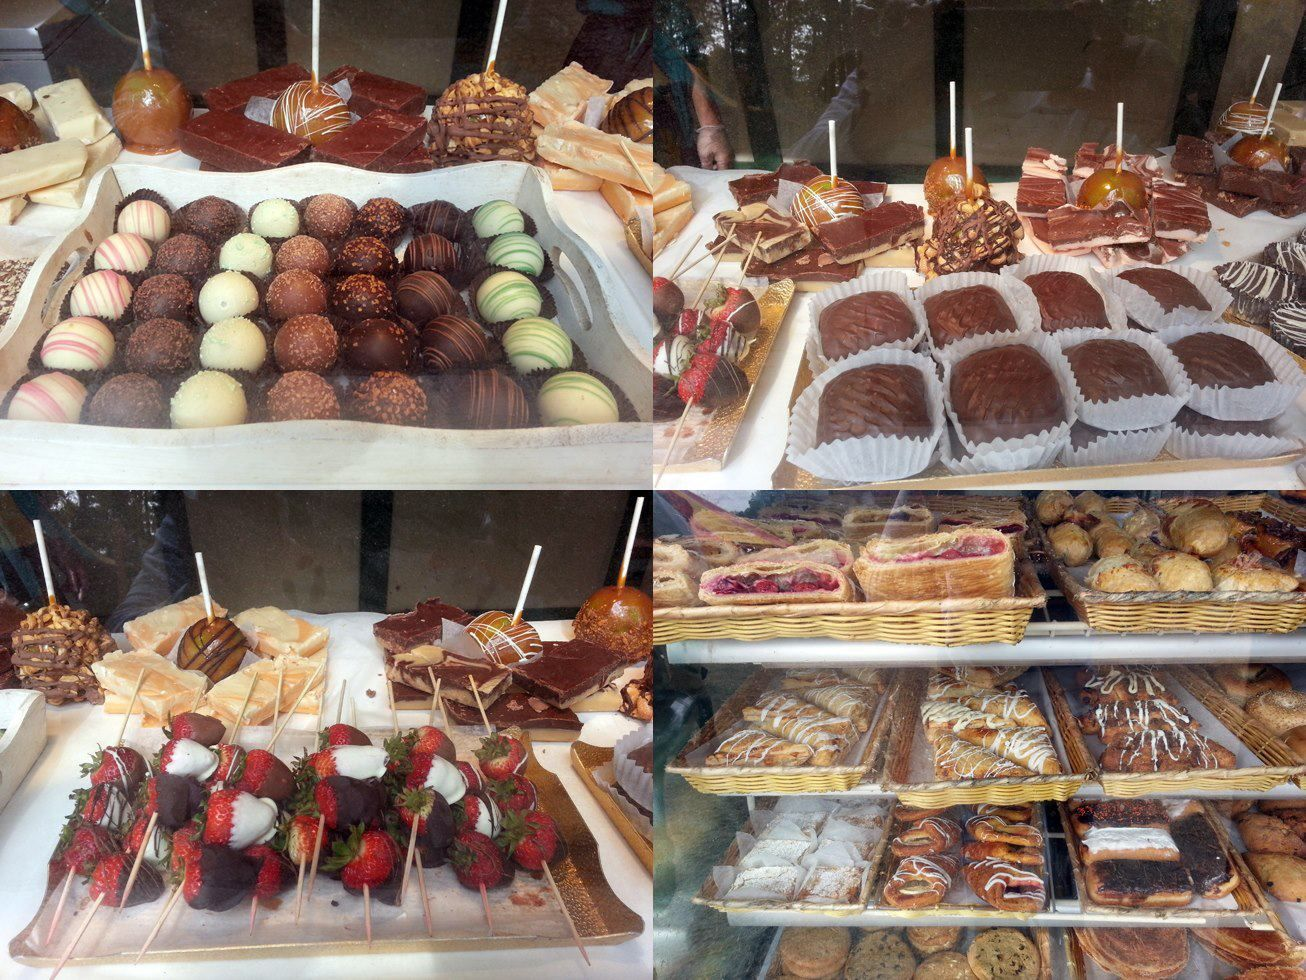 Chocolate and bakery items at the az ren fest